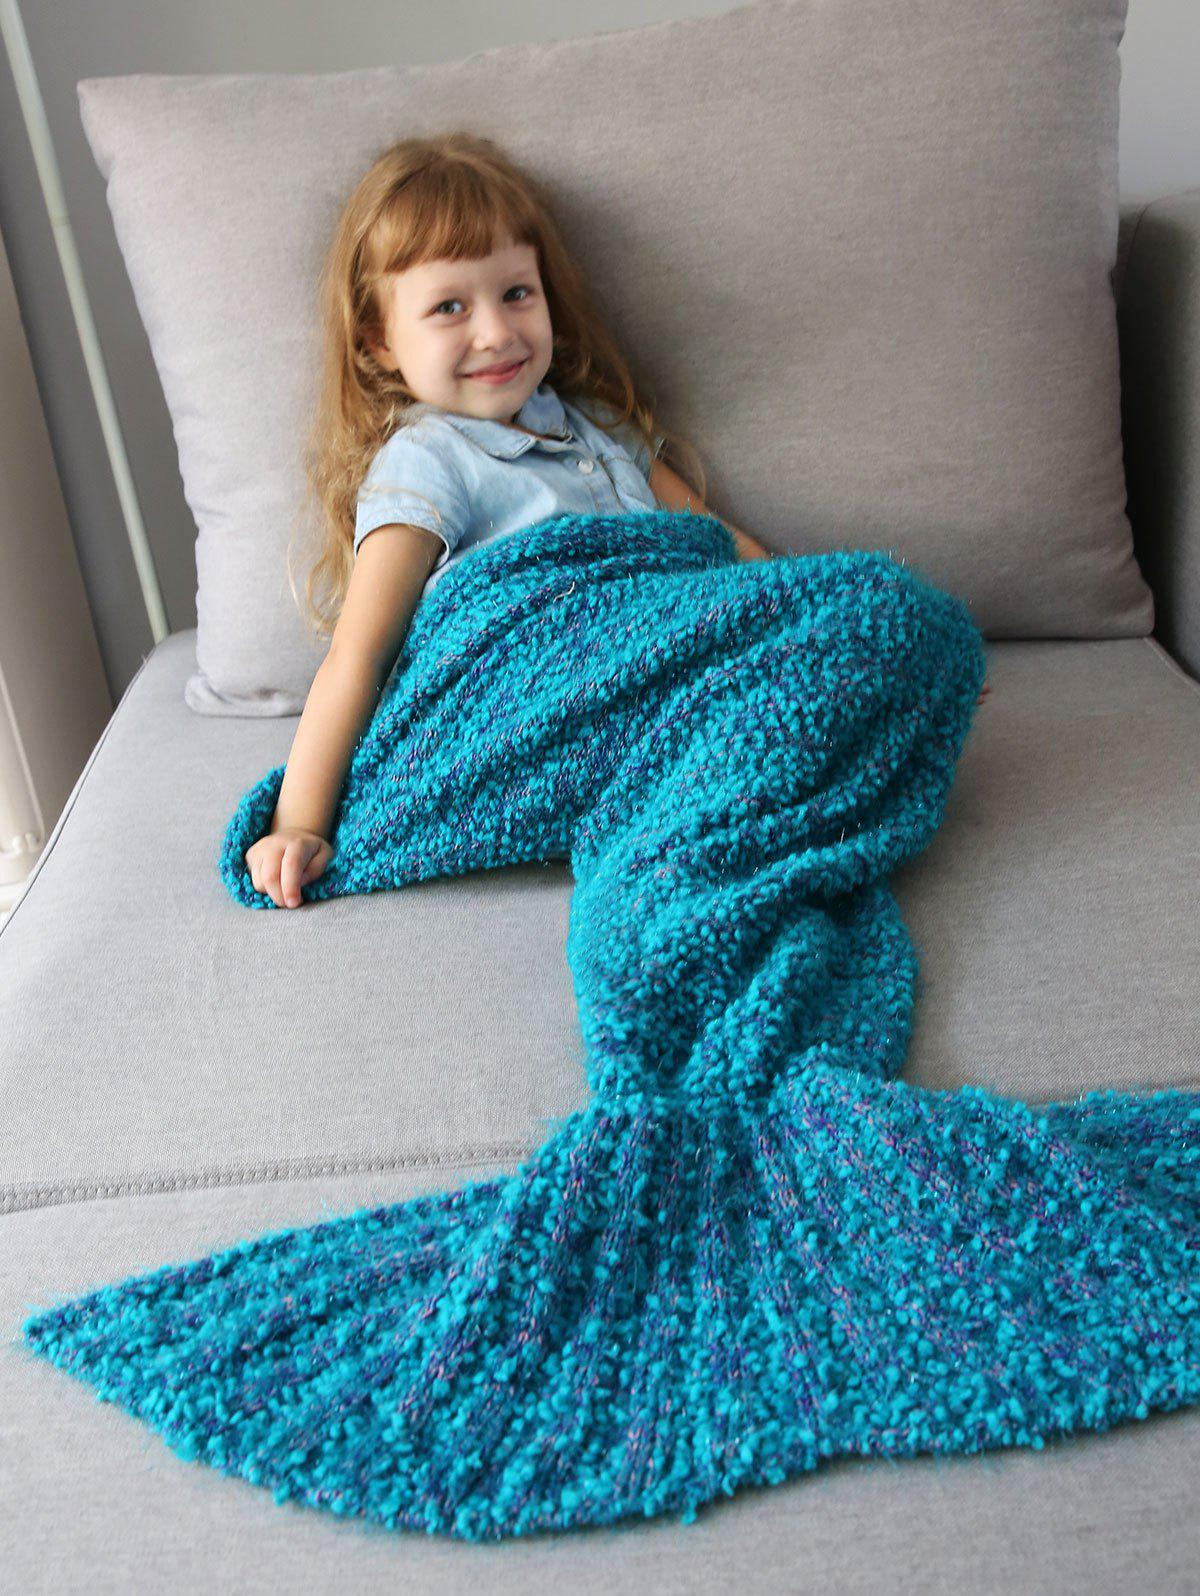 Chic Home Decor Crochet Knitted Imitation Shearling Mermaid Blanket Throw For Kids